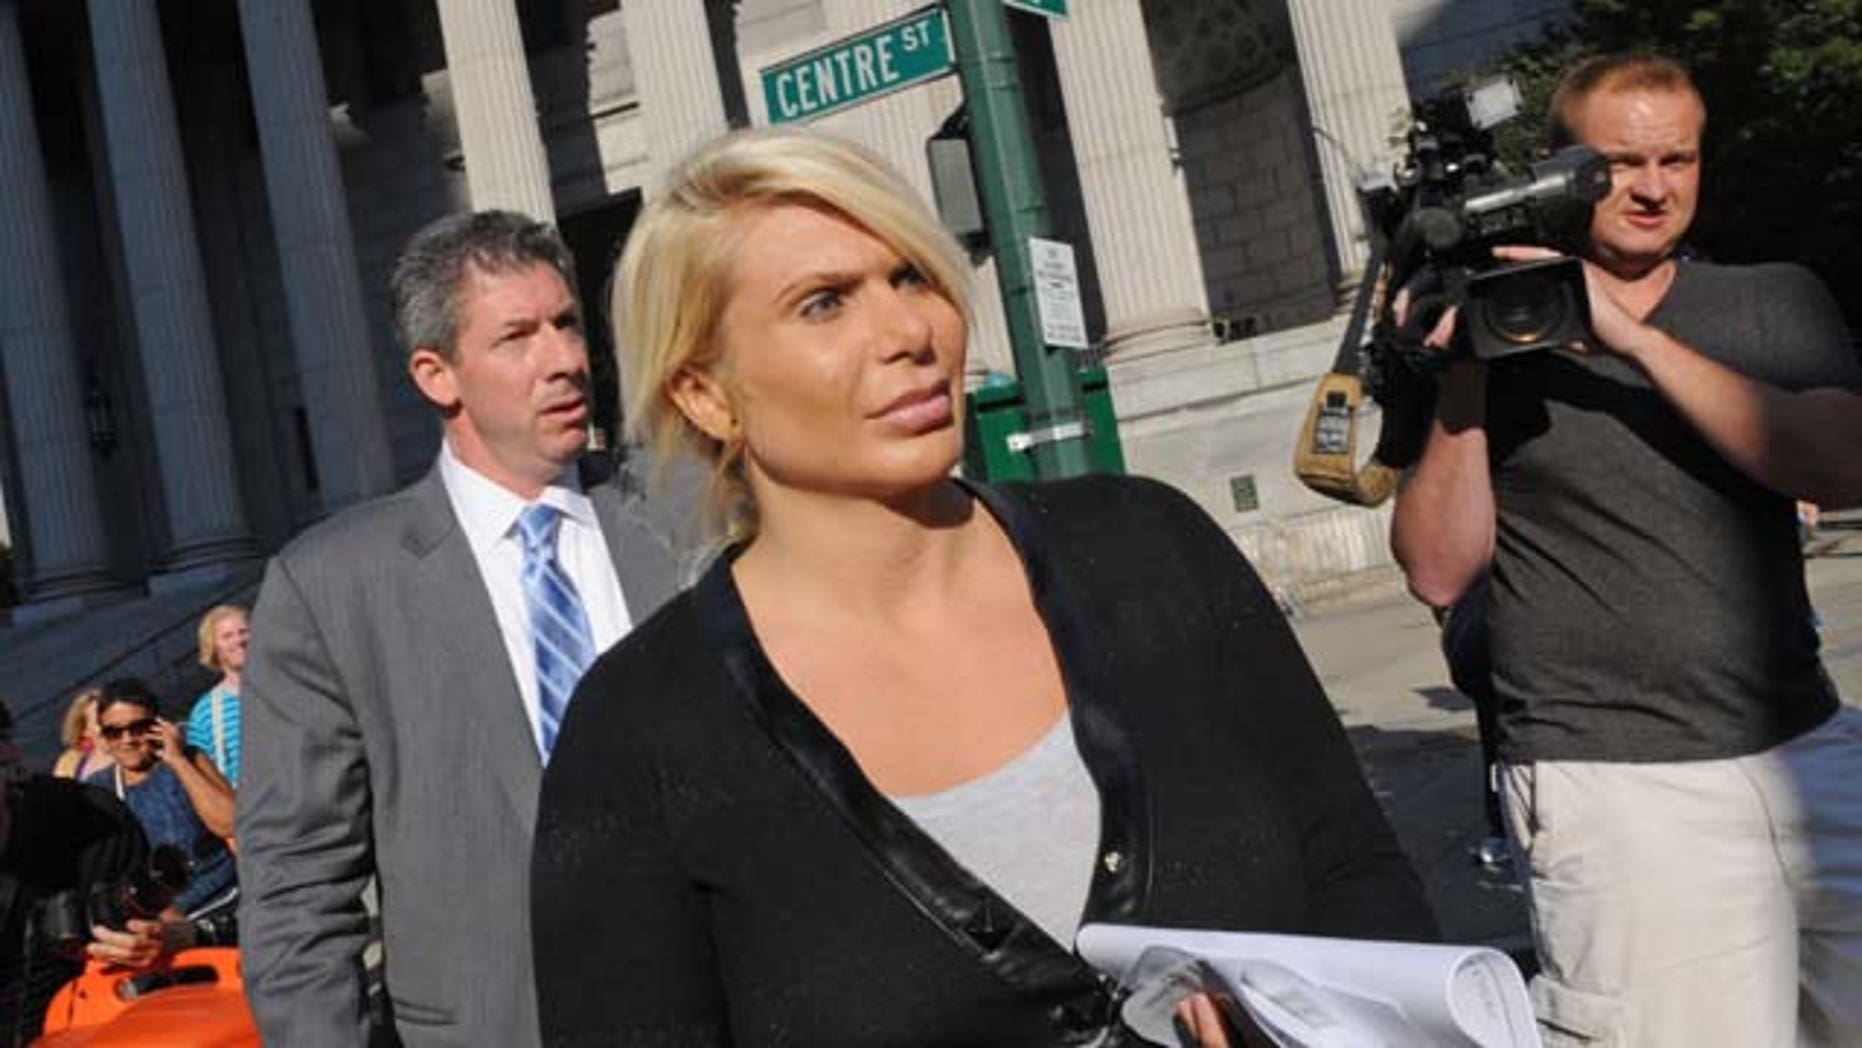 August 6, 2013: Kristin Davis, center, leaves Manhattan federal court with her attorney Daniel Hochheiser, left, in New York. Davis, a former madam running against former Gov. Eliot Spitzer in the race for New York City comptroller, peddled hundreds of powerful painkillers and other prescription pills in exchange for Ecstasy and cash from a drug dealer wearing a wire, federal authorities said Tuesday. (AP Photo)